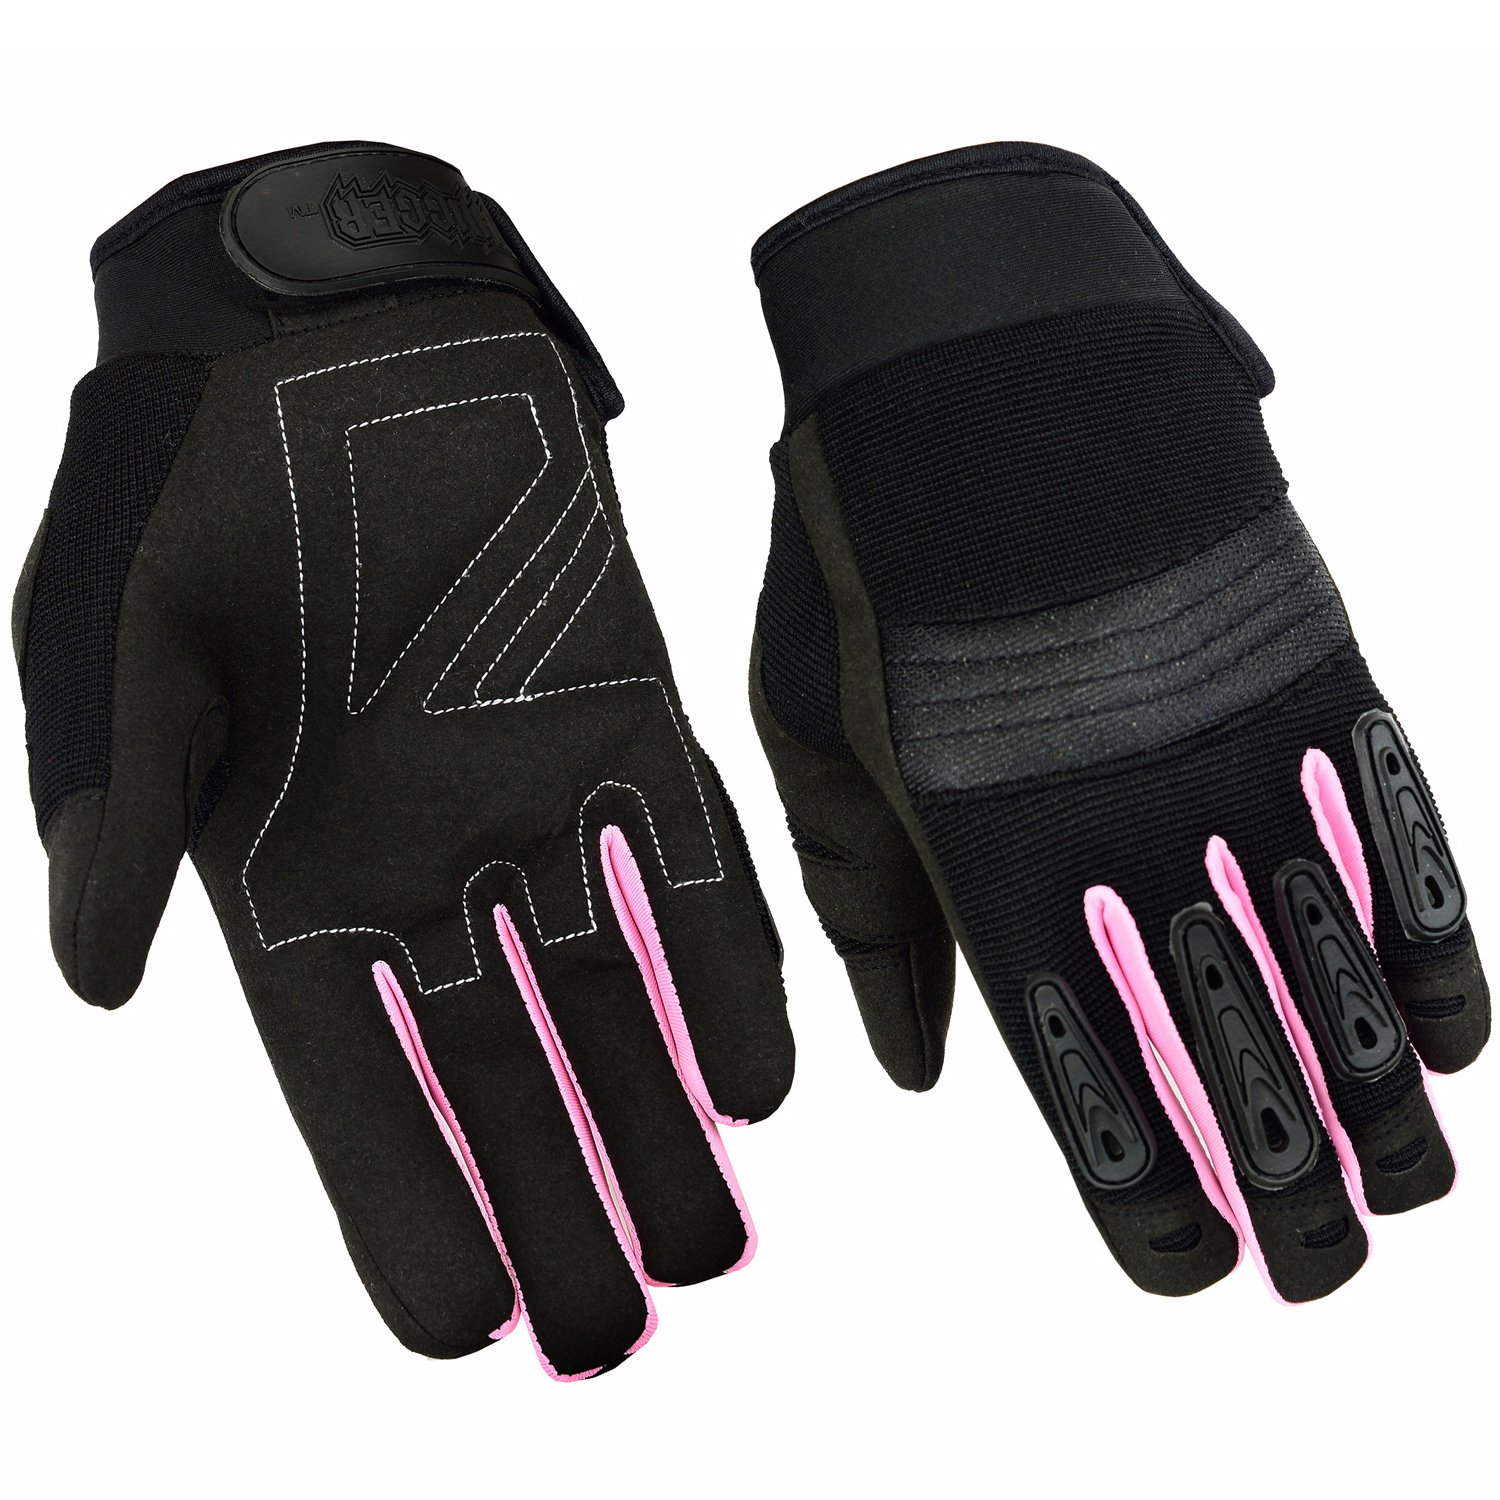 Womens Air Cooled No Sweat Knit Extreme Comfort Riding Glove (Medium, Pink/Black)